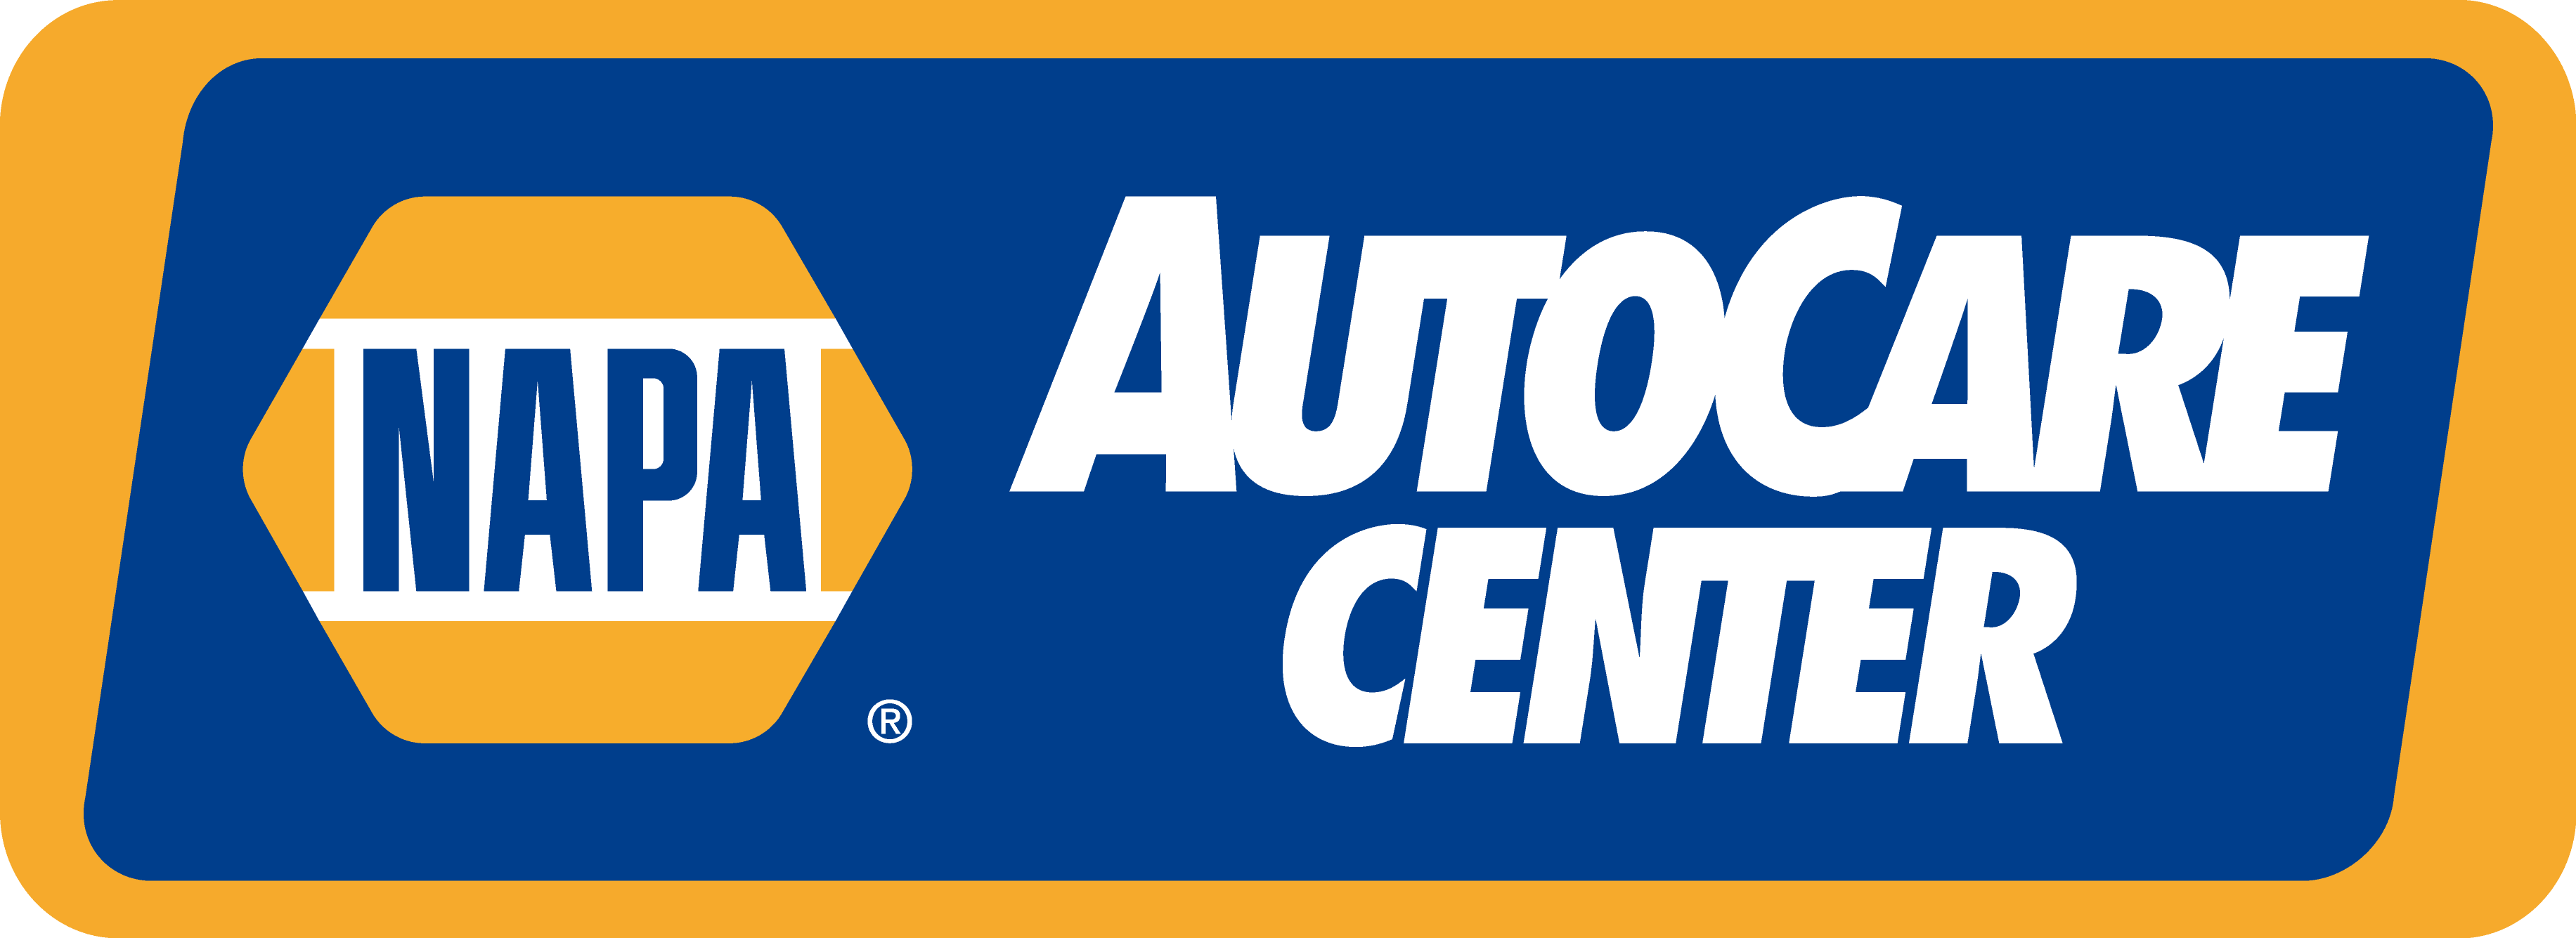 NAPA Auto Care Center, Three Brothers Auto Repair, East Rutherford, NJ, 07073